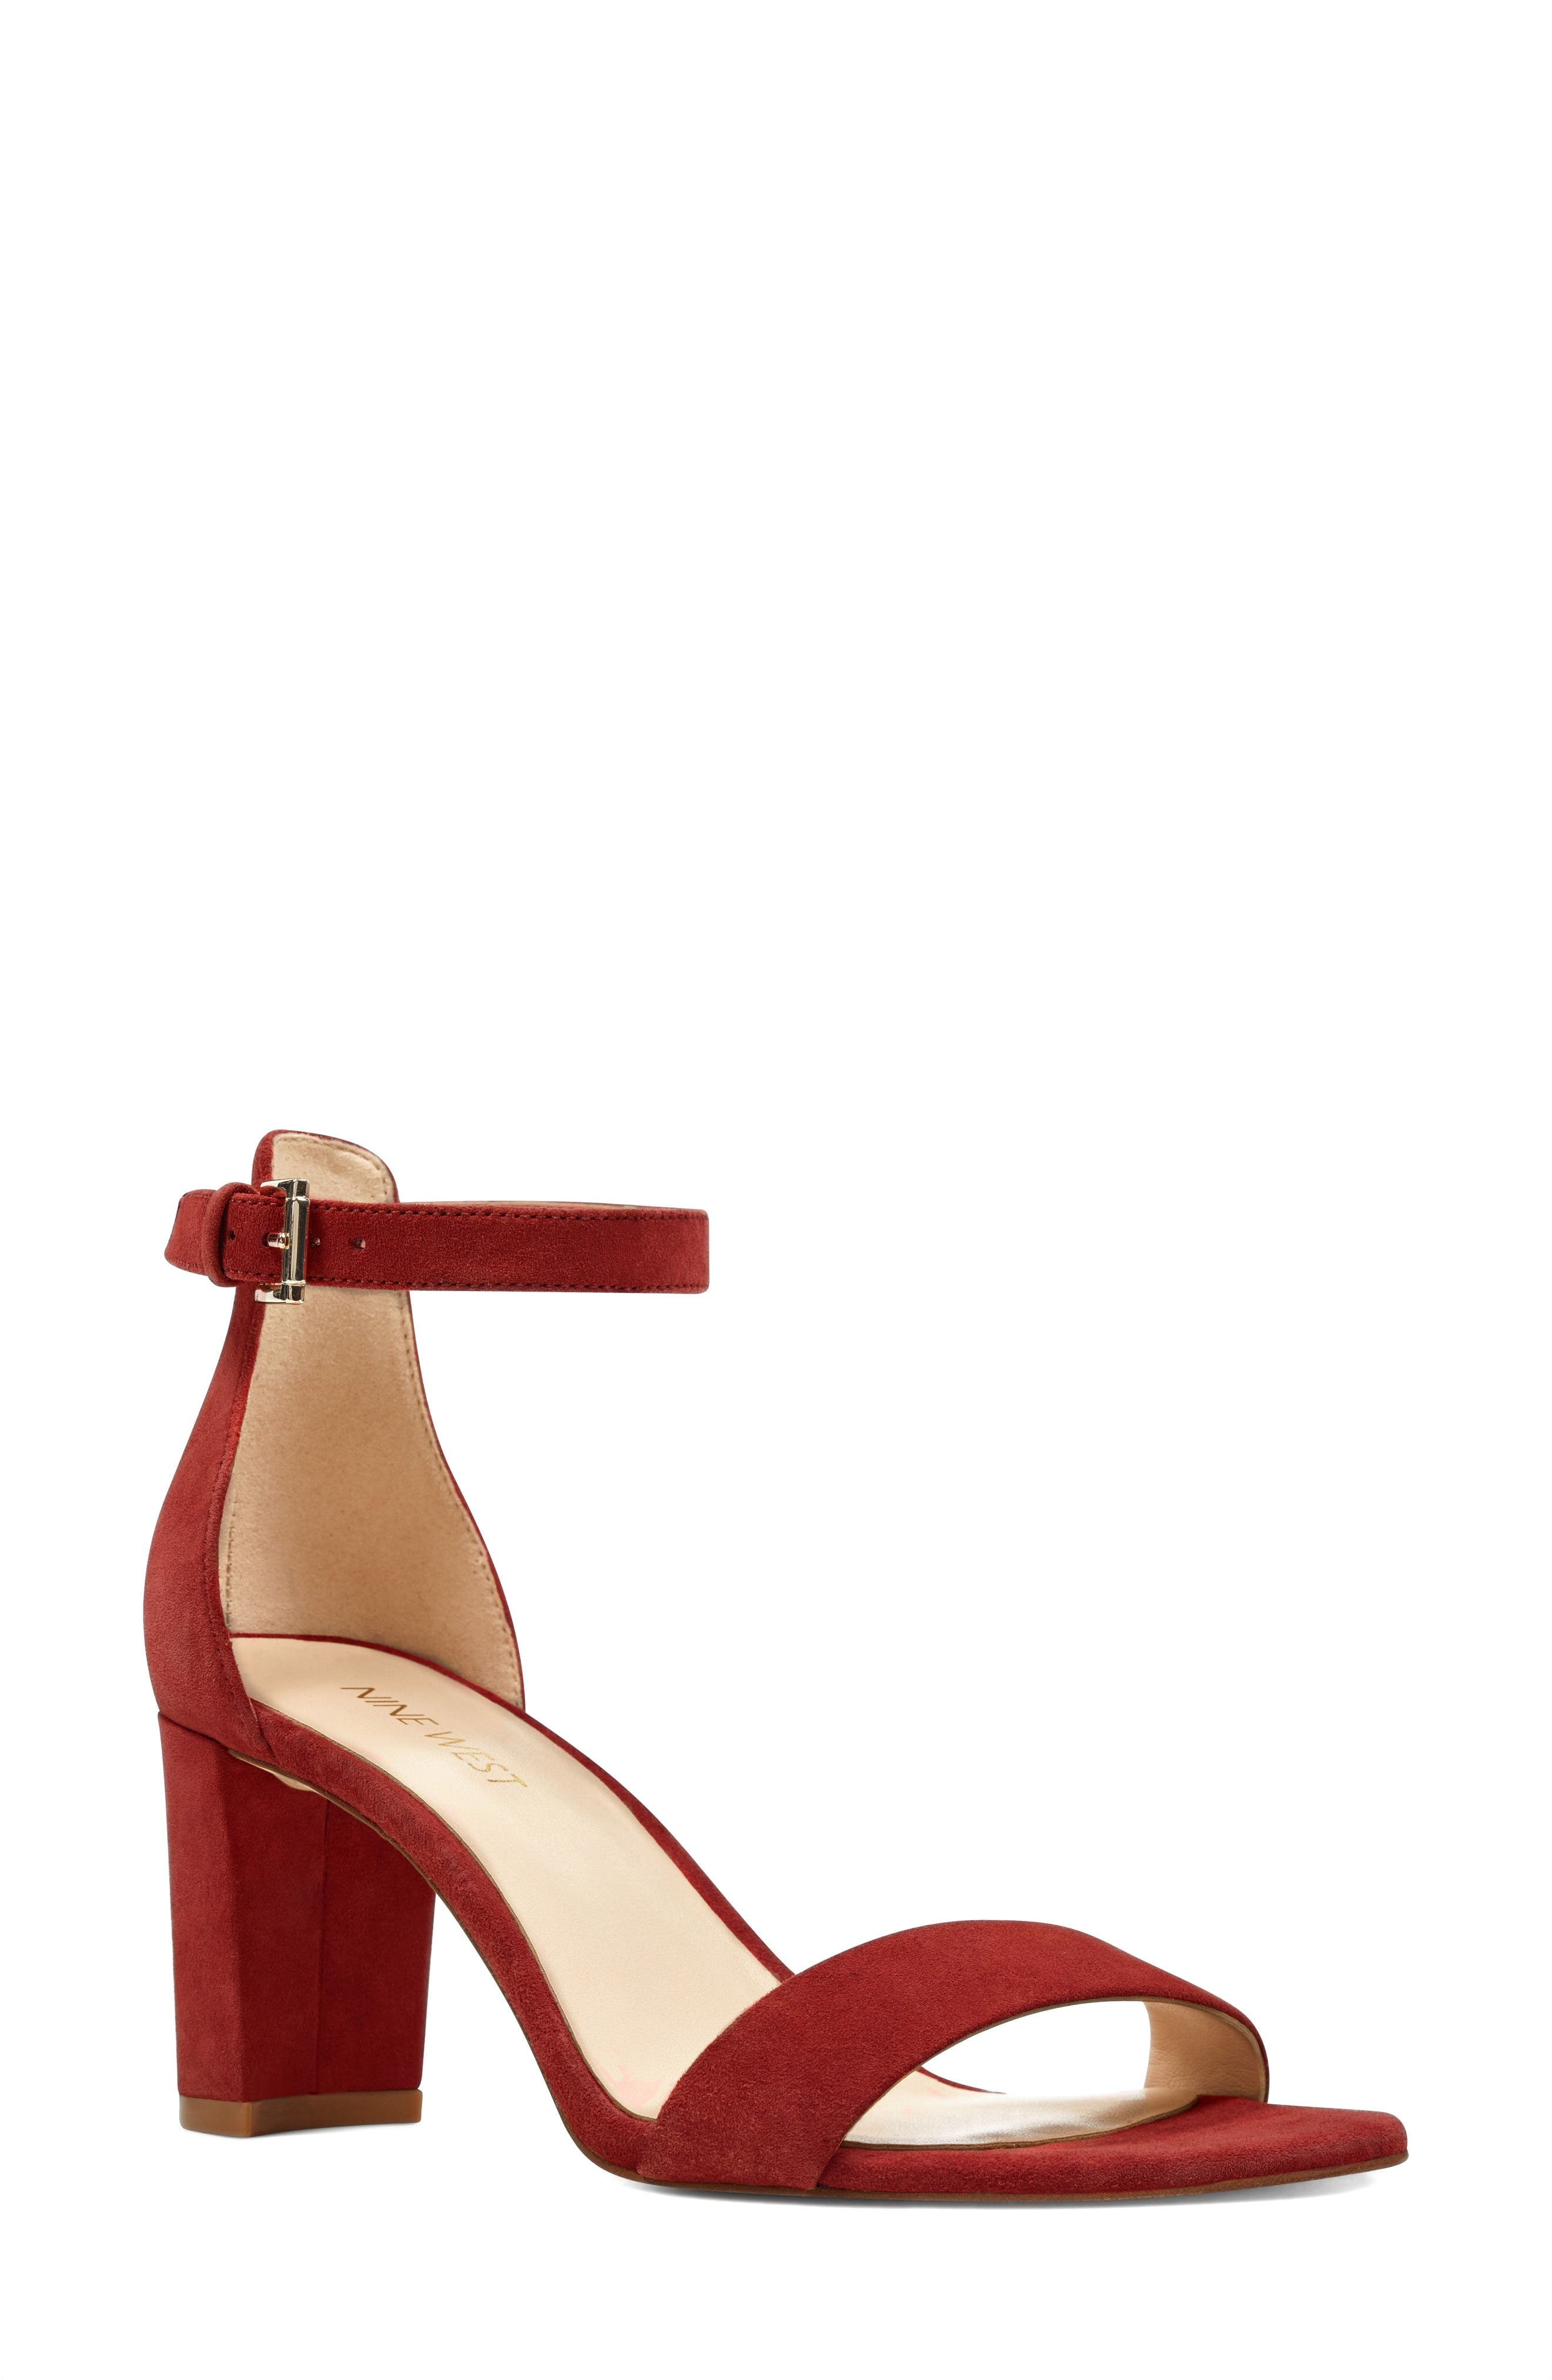 Pruce Ankle Strap Sandal,                         Main,                         color, Red Suede